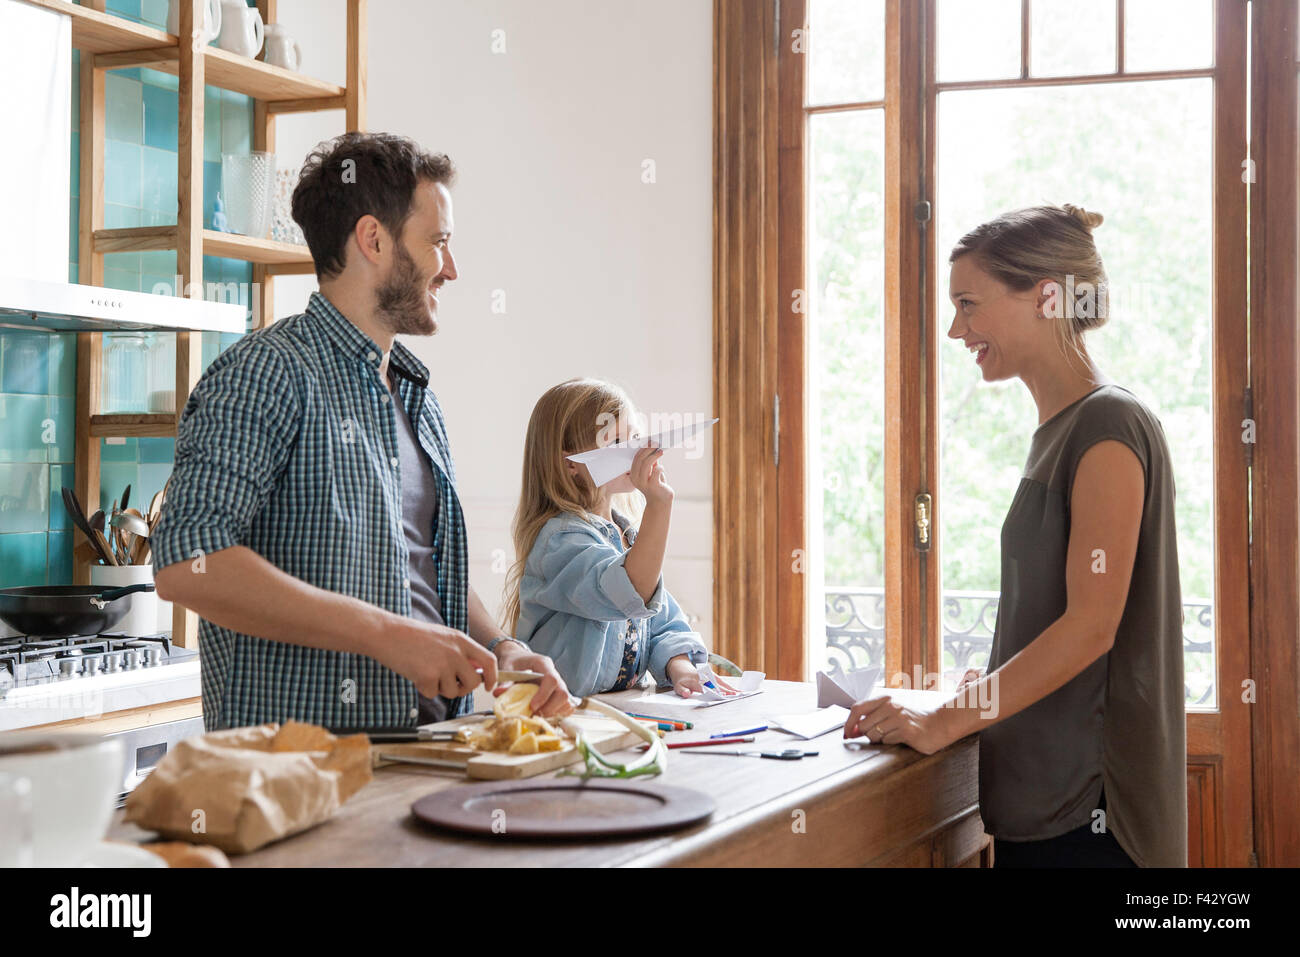 Family spending time together in kitchen - Stock Image